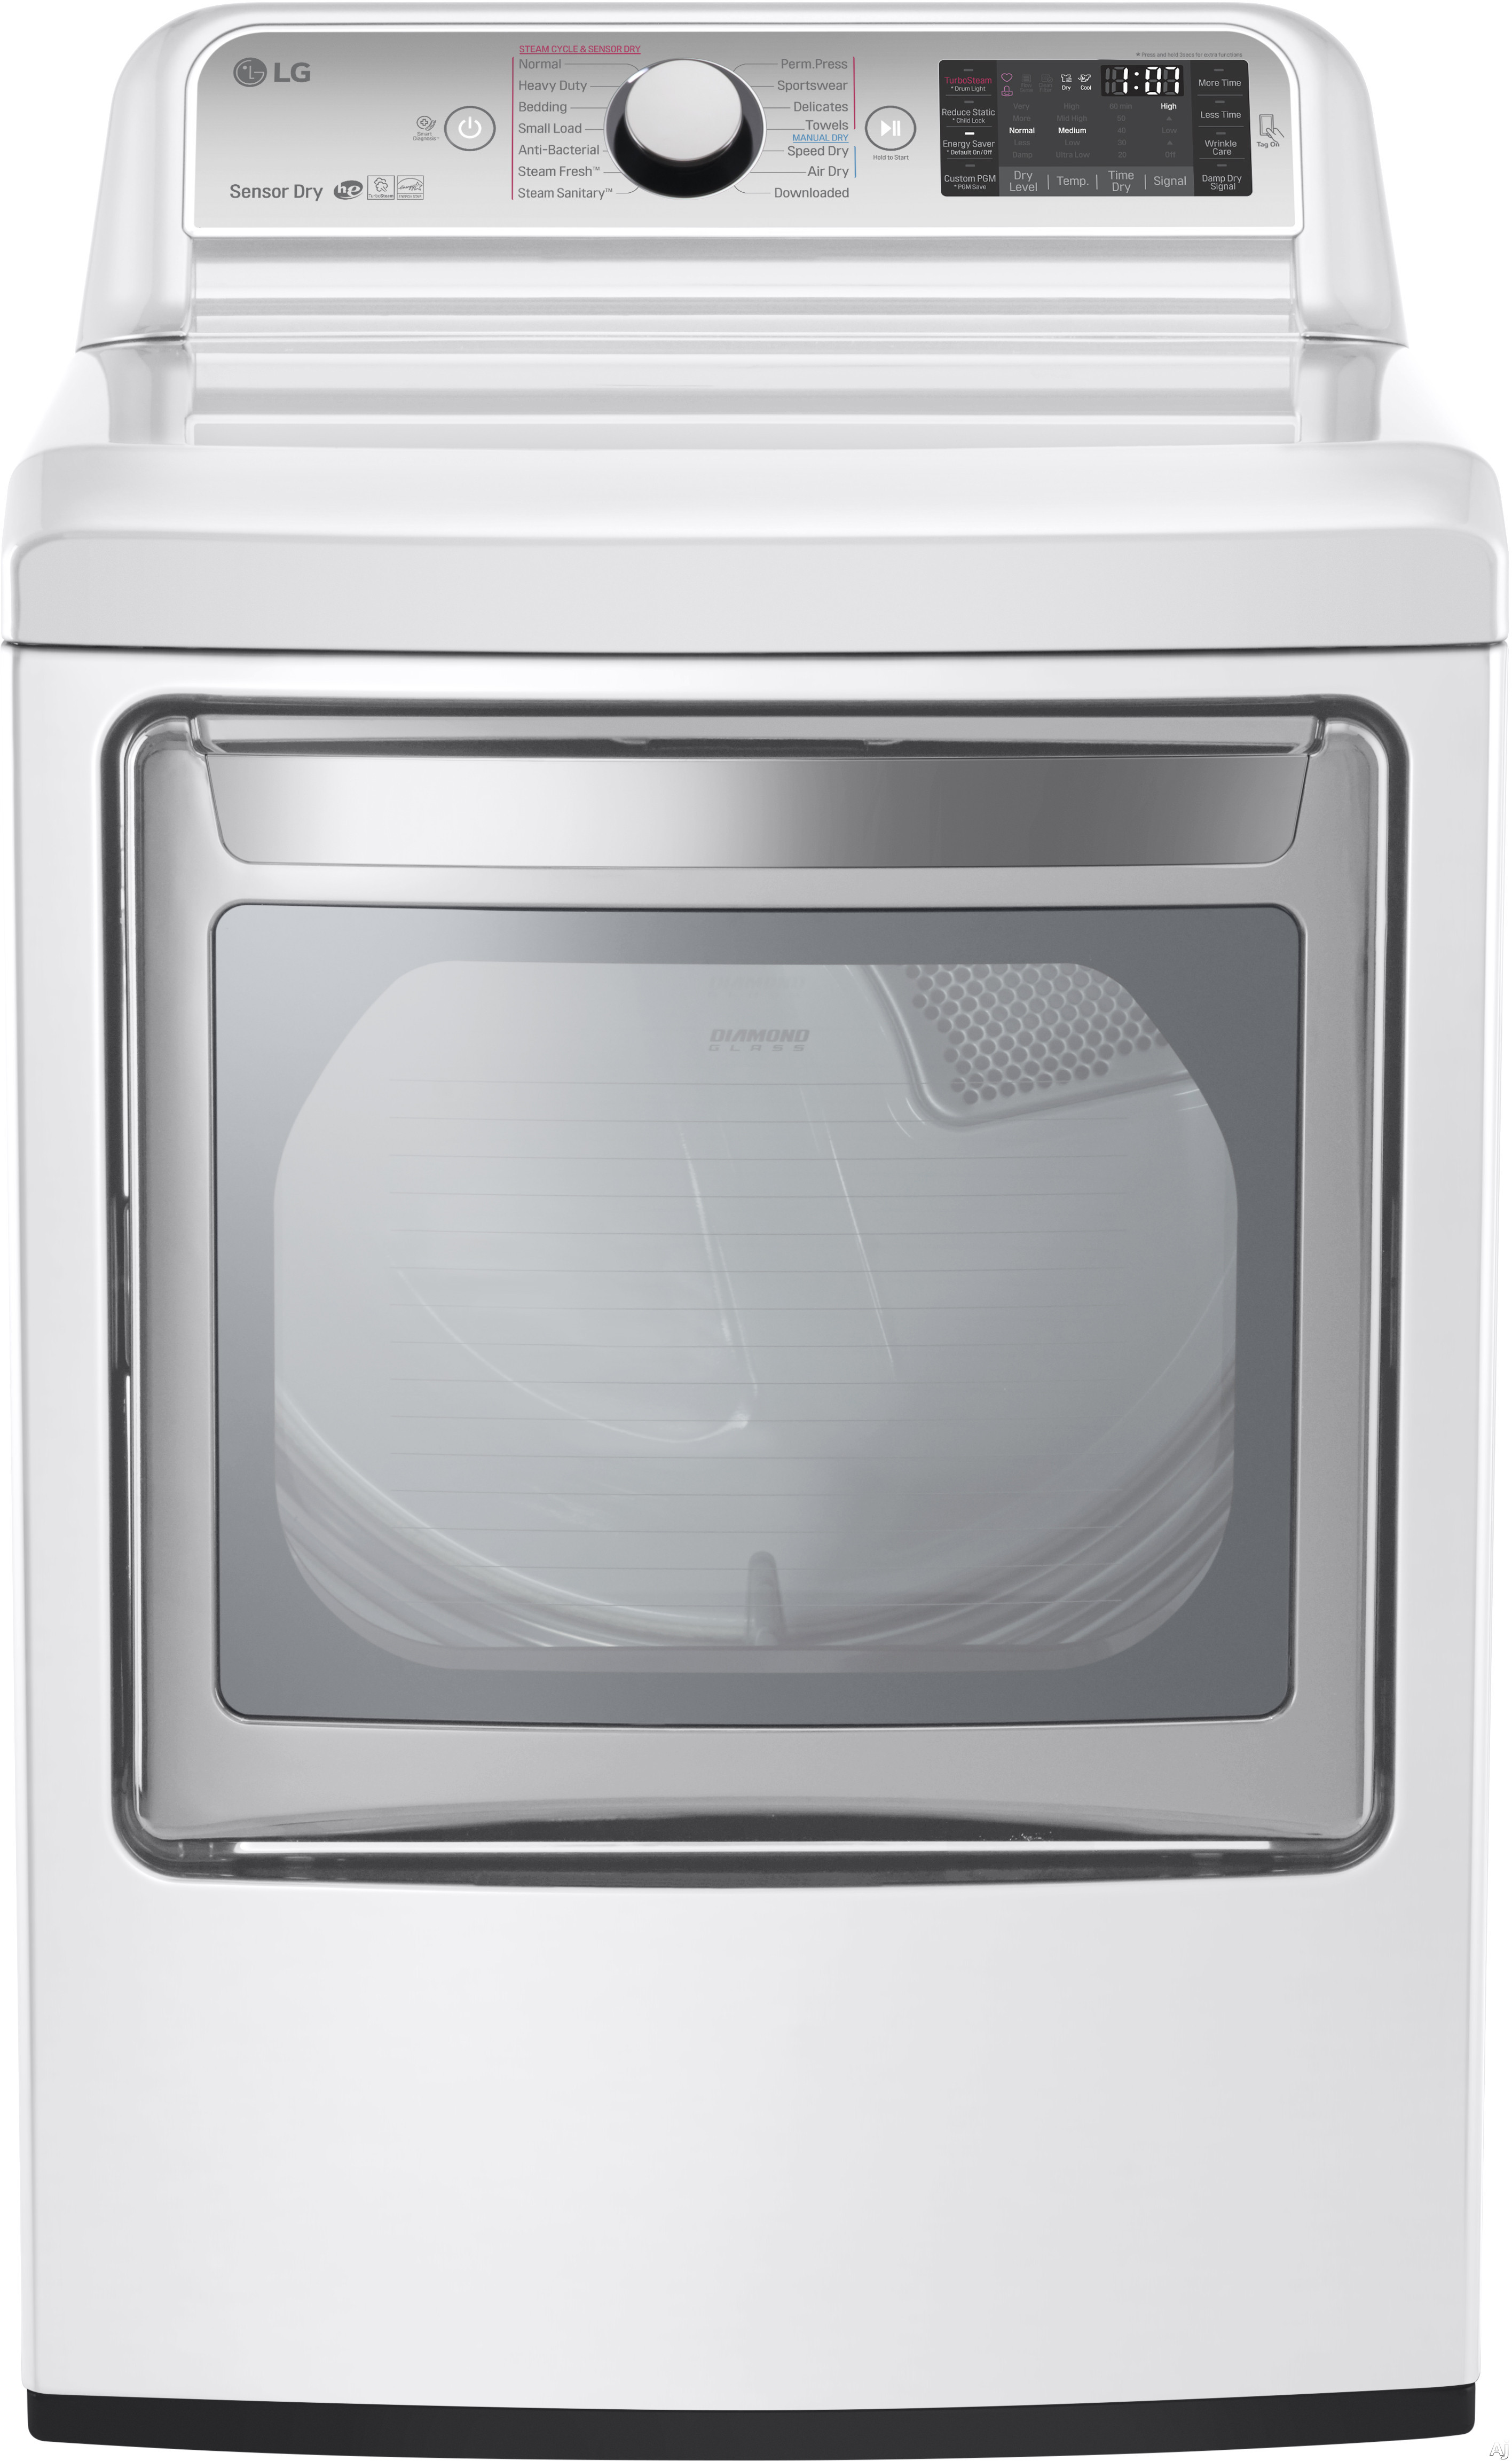 LG DLEX7600WE 27 Inch 7.3 cu. ft. Electric Dryer with 14 Dry Programs TurboSteam EasyLoad Door Smart ThinQ Technology ReduceStatic Option NeveRust Stainless Steel Drum and ENERGY STAR Qualified White